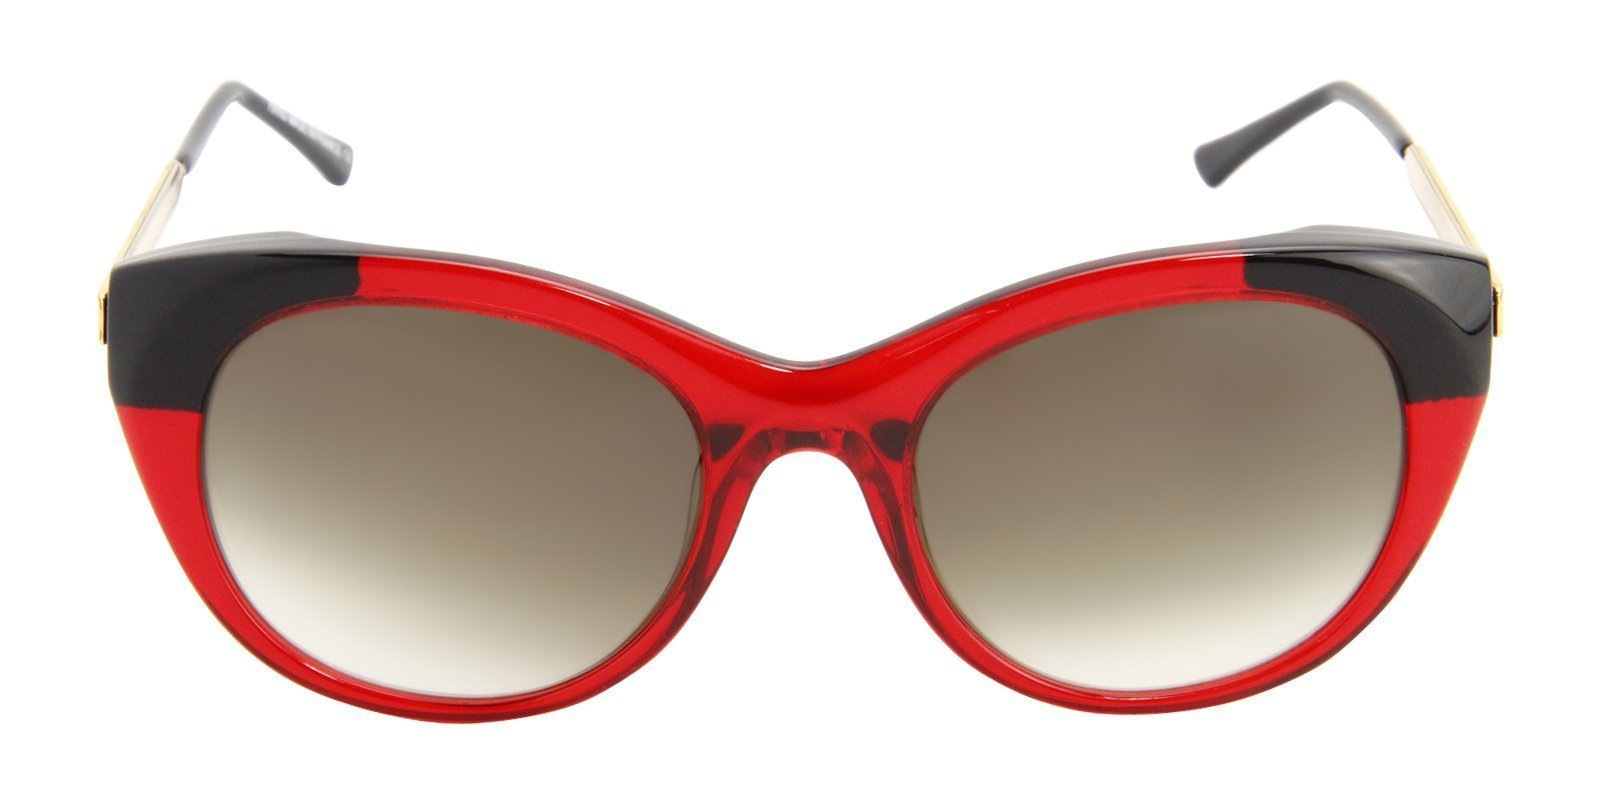 Thierry Lasry - Fingery Red Oval Women Sunglasses - 56mm-Sunglasses-Designer Eyes